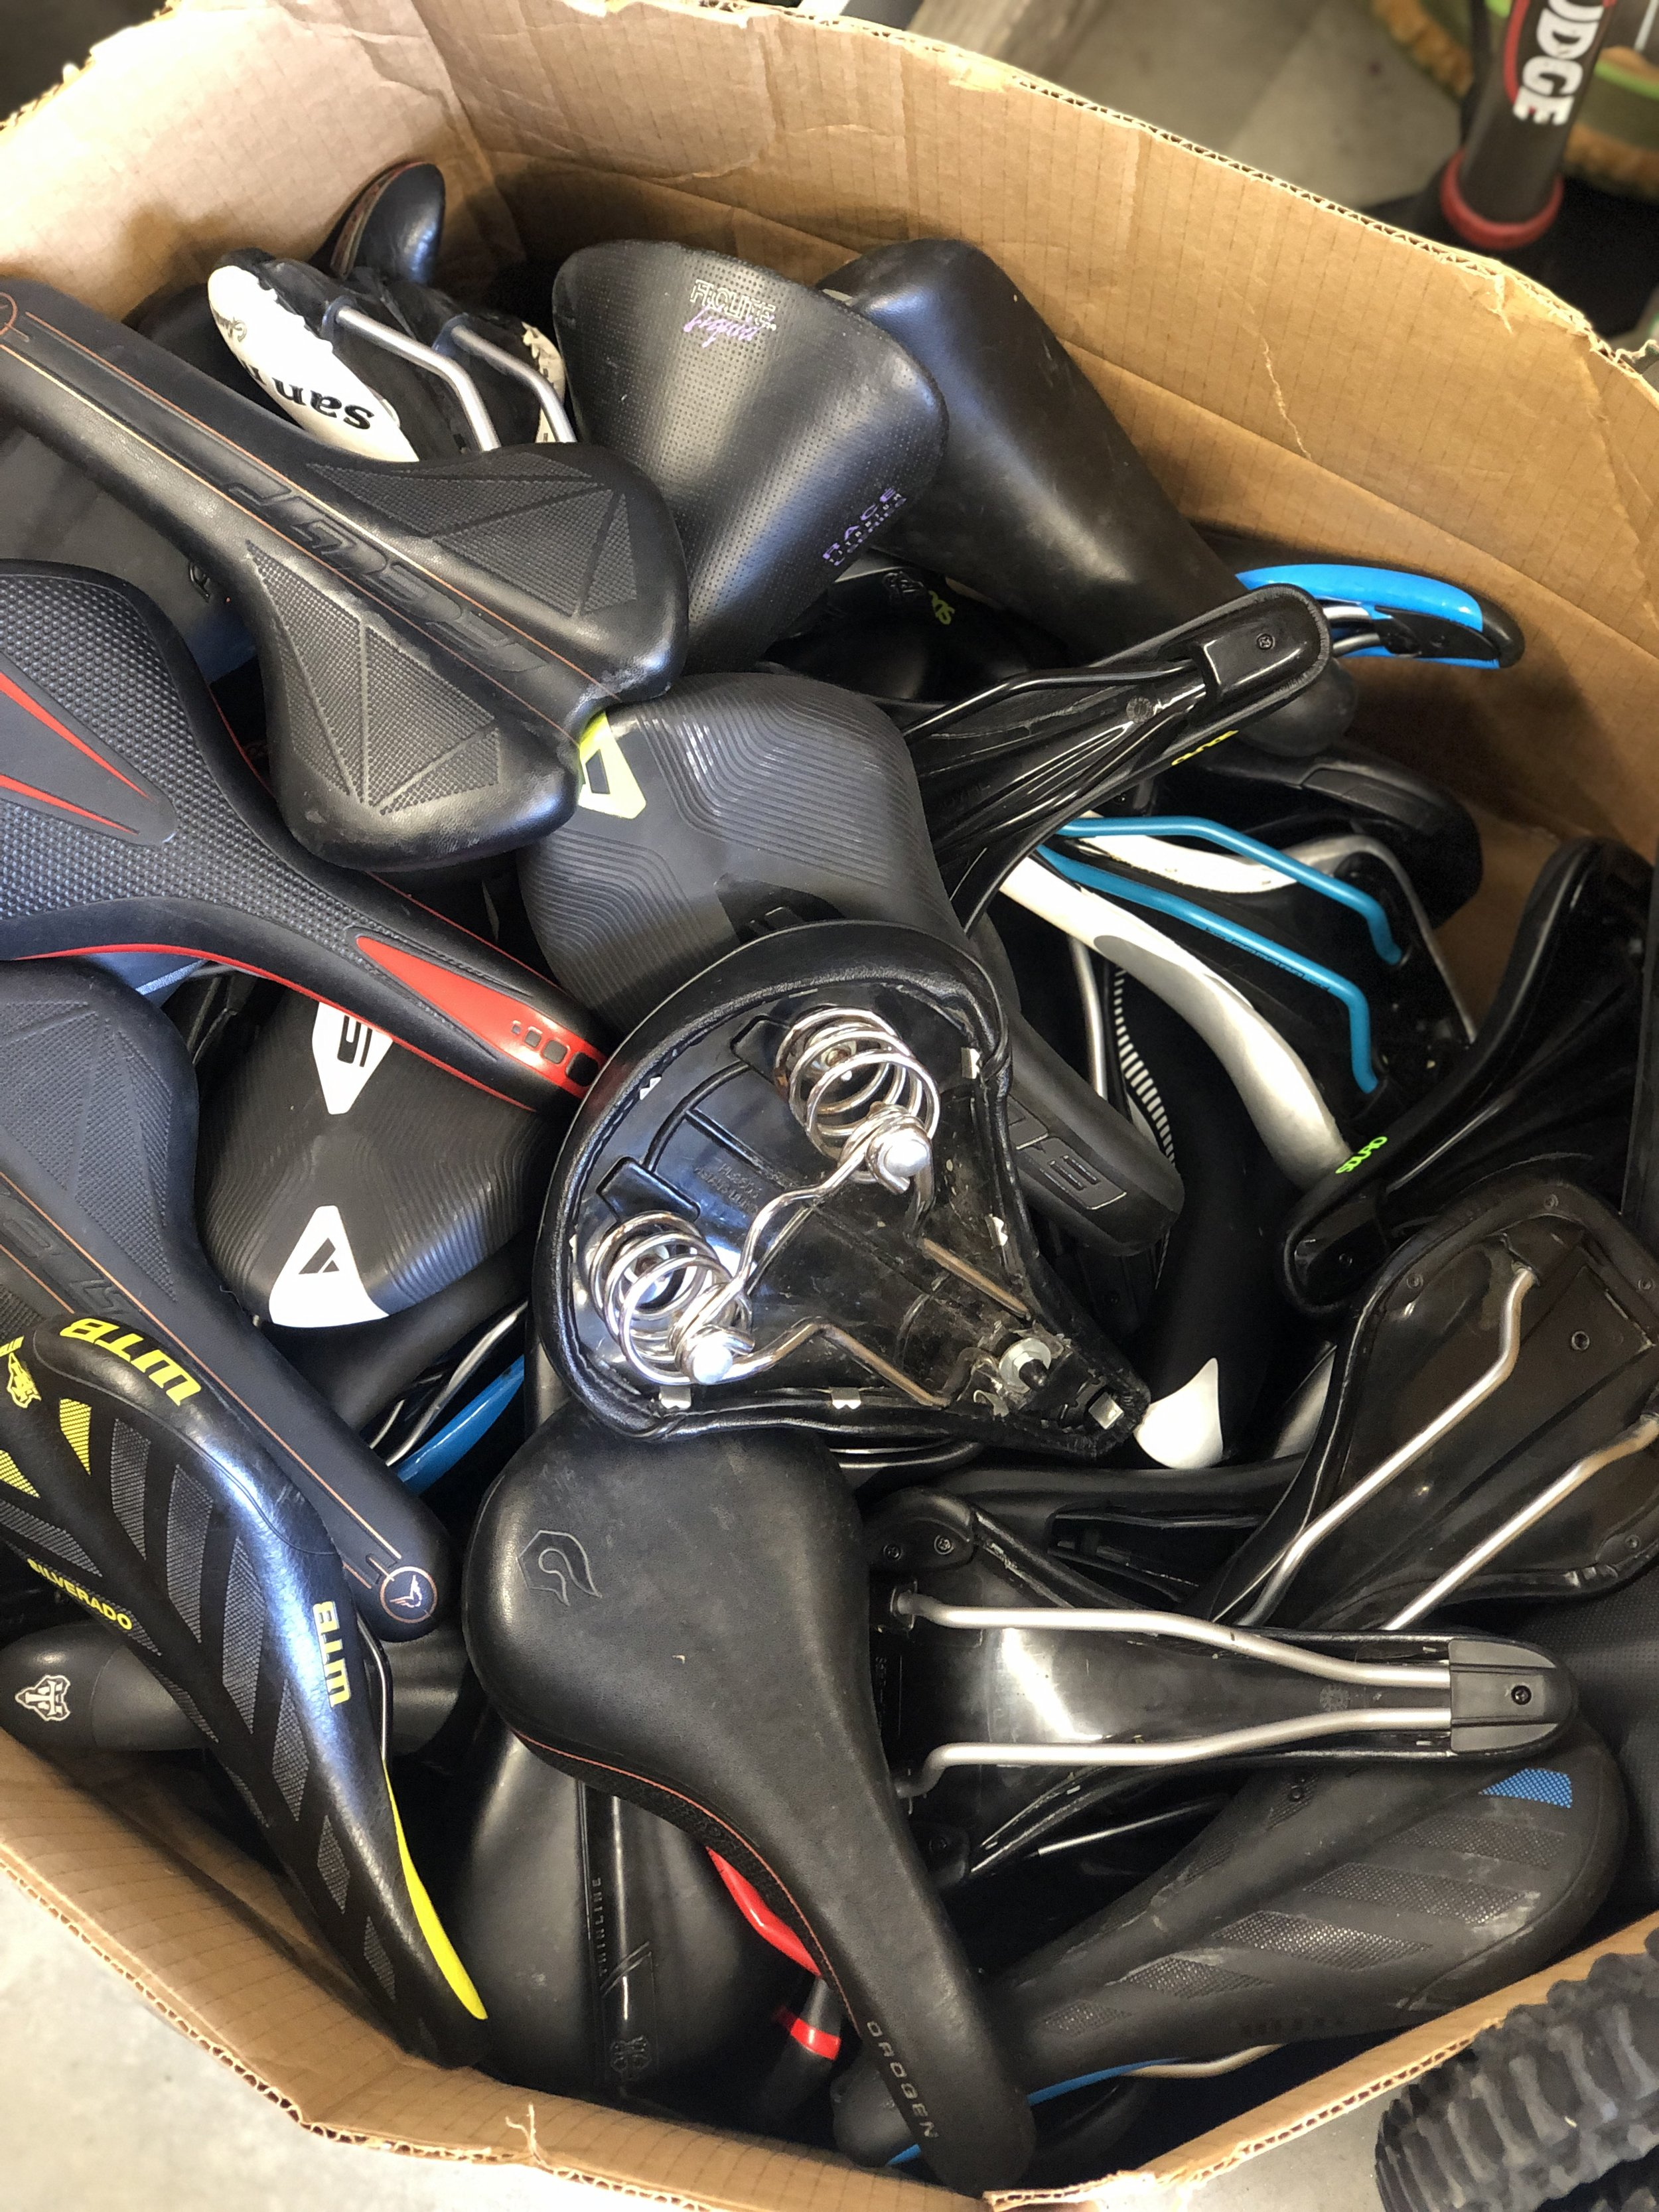 Sometimes we hit the jackpot and get a bulk donation like these like-new saddles! Donation Processing volunteers will sort, price and put these goodies out for sale.